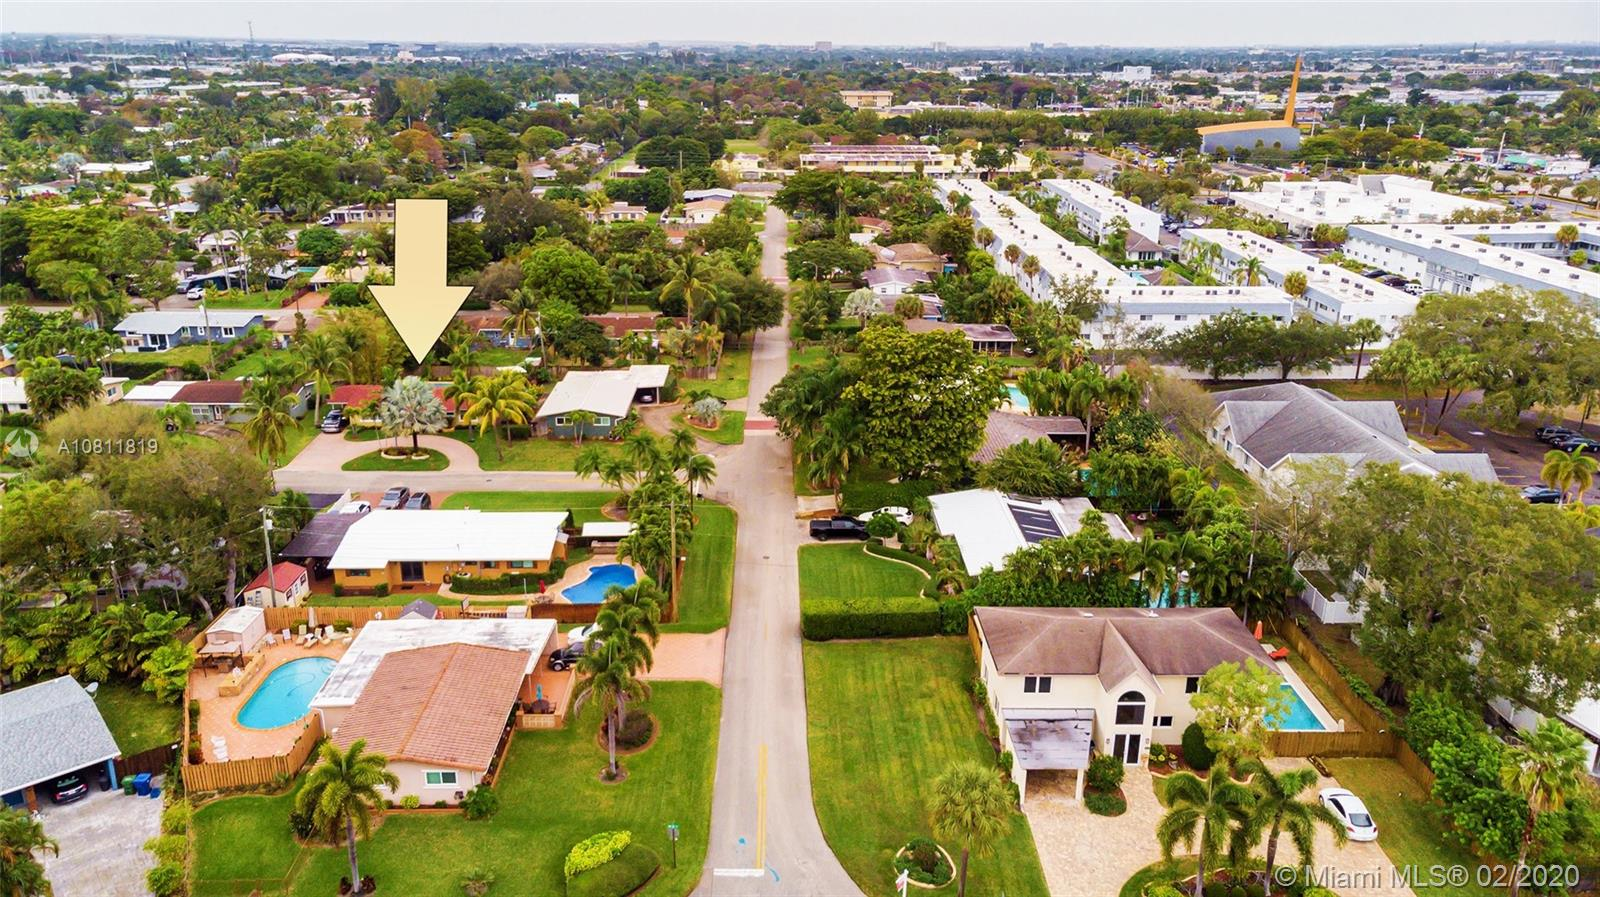 309 NW 27th St, Wilton Manors, FL 33311